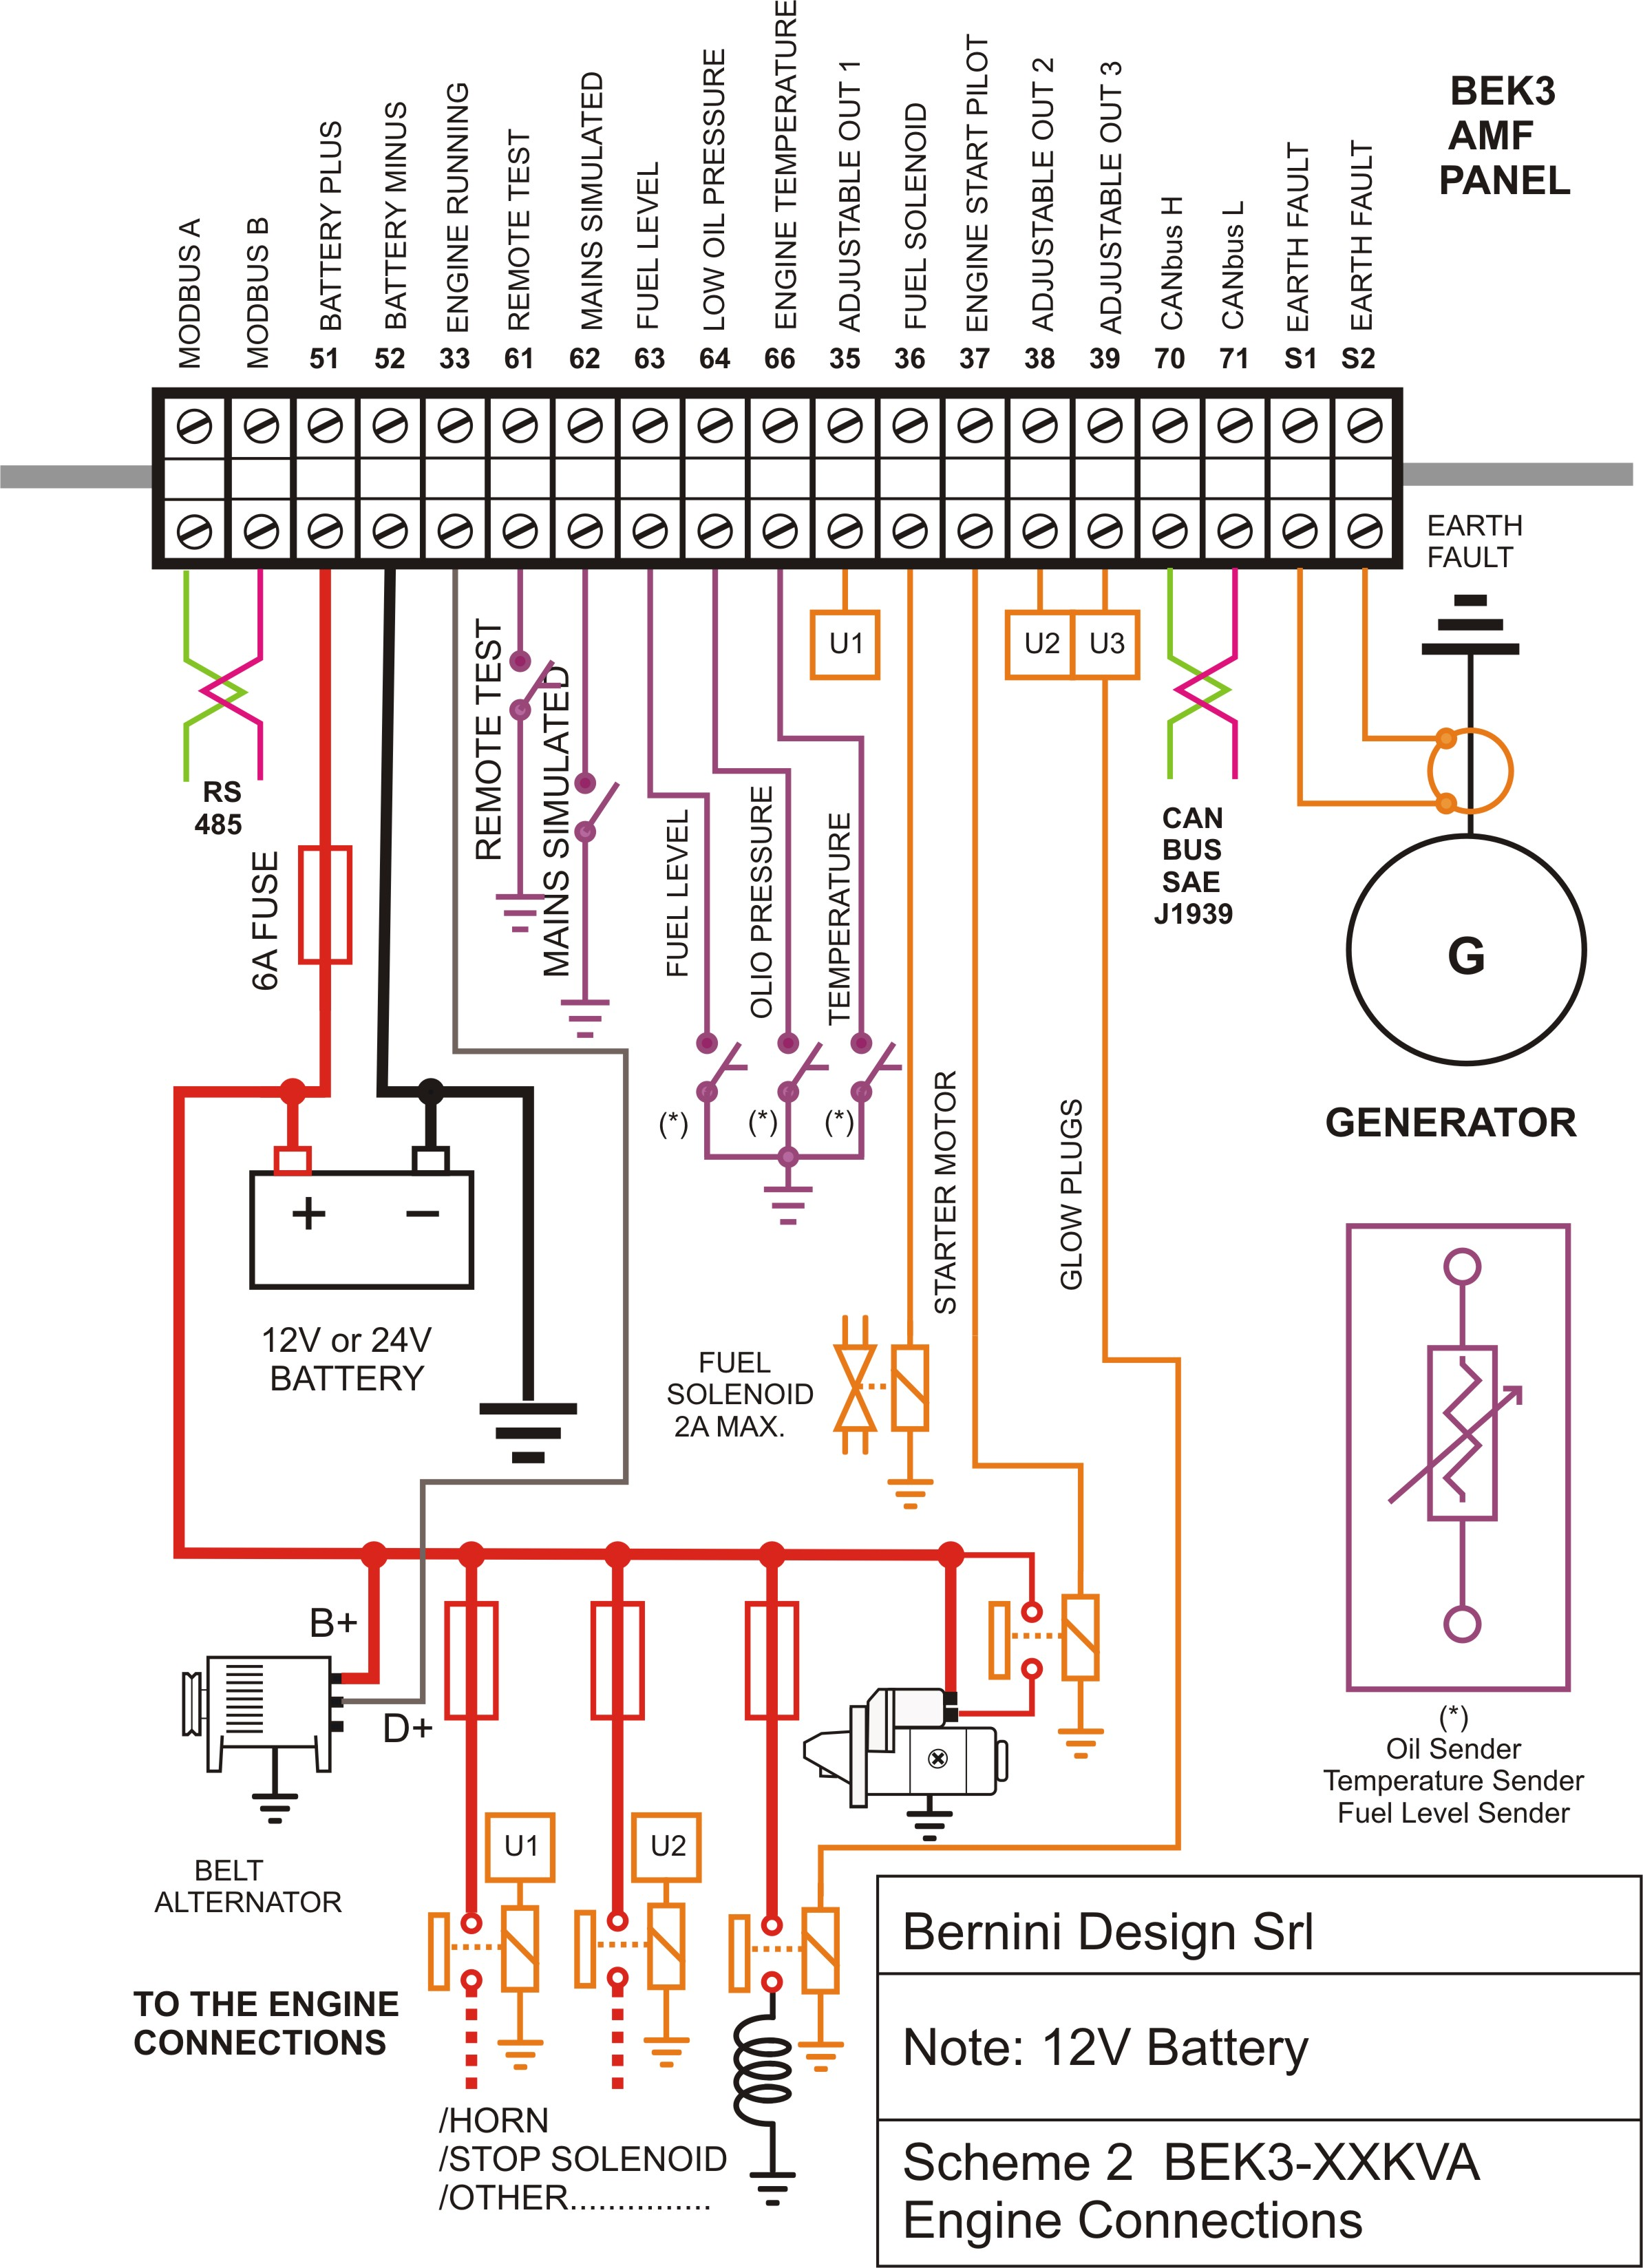 Breathtaking merkur wiring diagram gallery best image diagram lexus rx 400h 2569340 mini starter wiring diagram germany wiring cheapraybanclubmaster Image collections